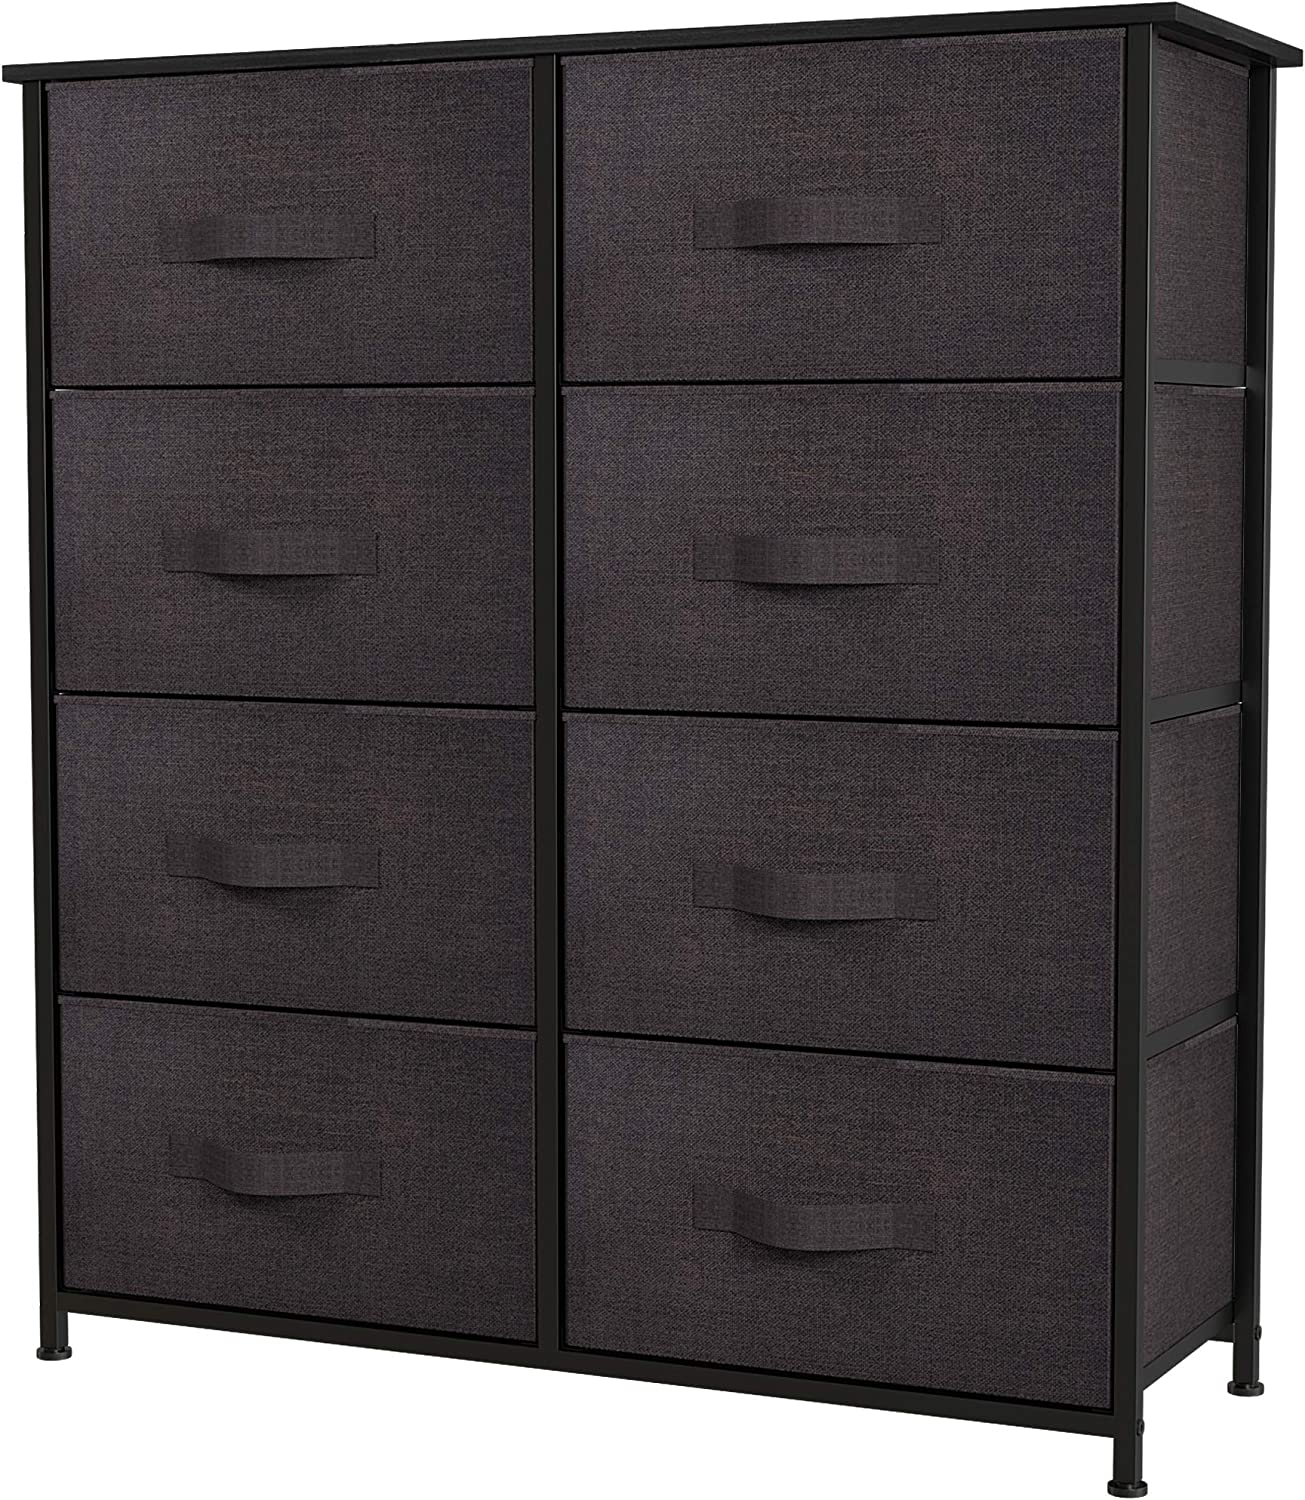 A surprise price is realized YITAHOME Dresser Ranking TOP18 with 8 Drawers Storage Tower Organize - Fabric